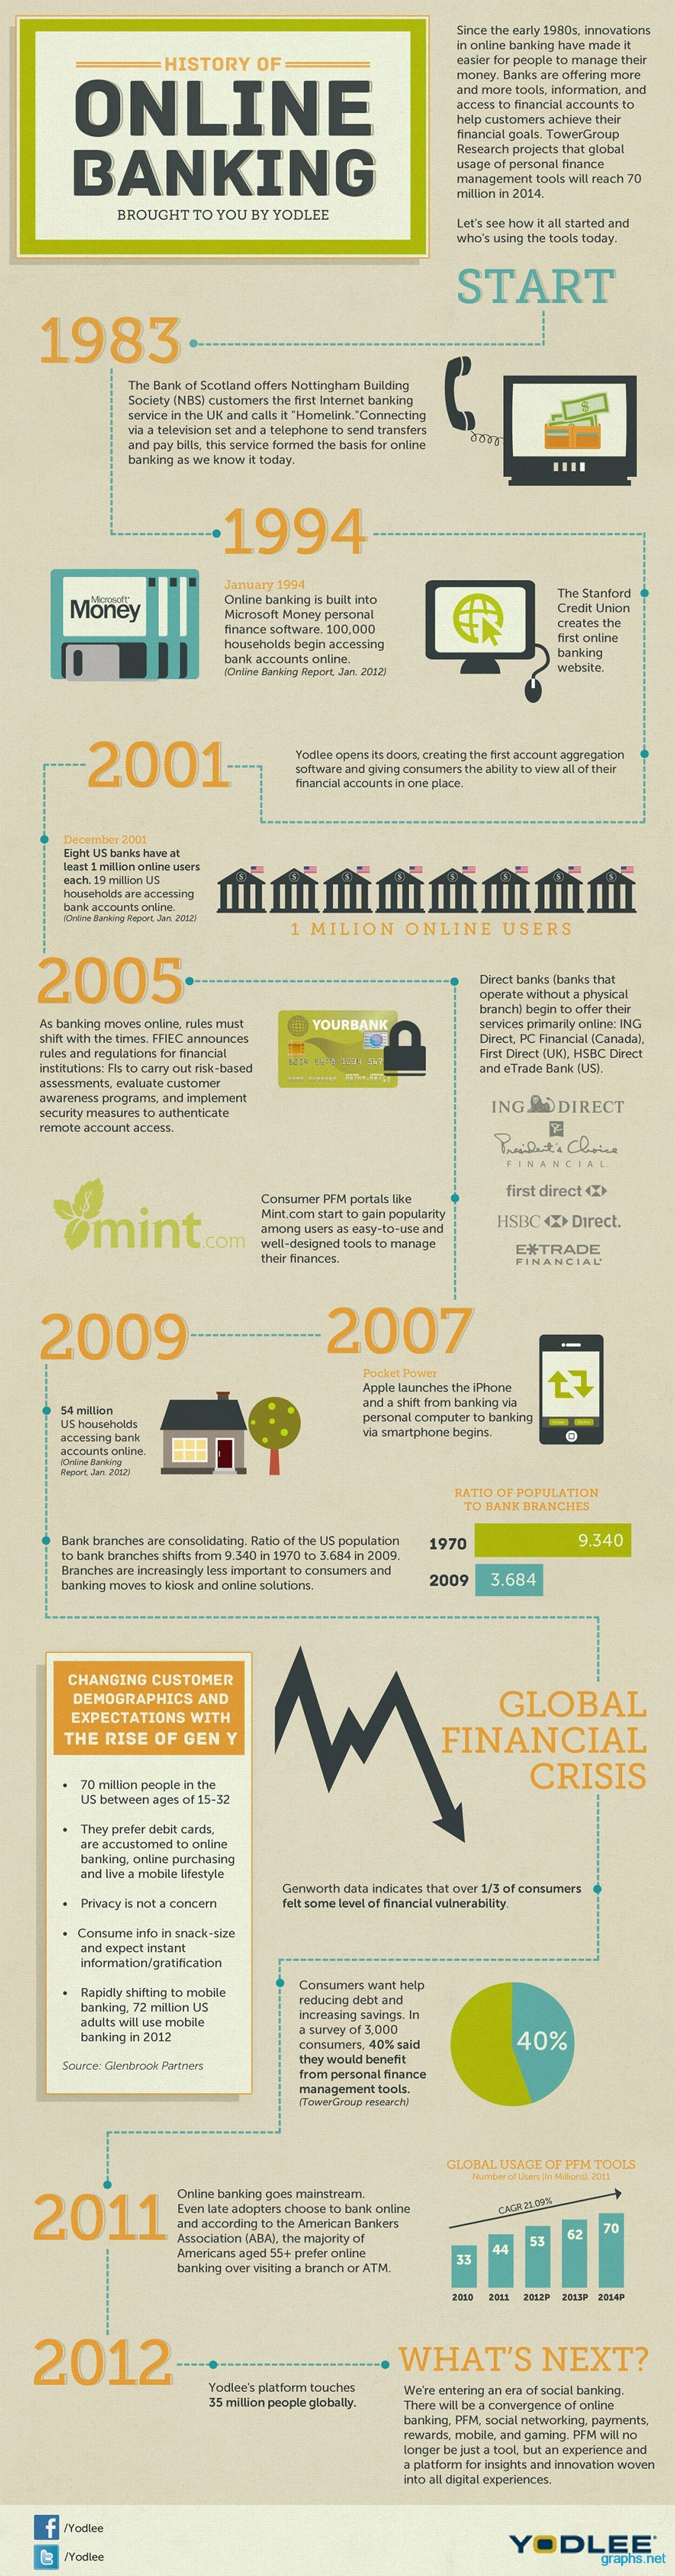 The History of Online Banking